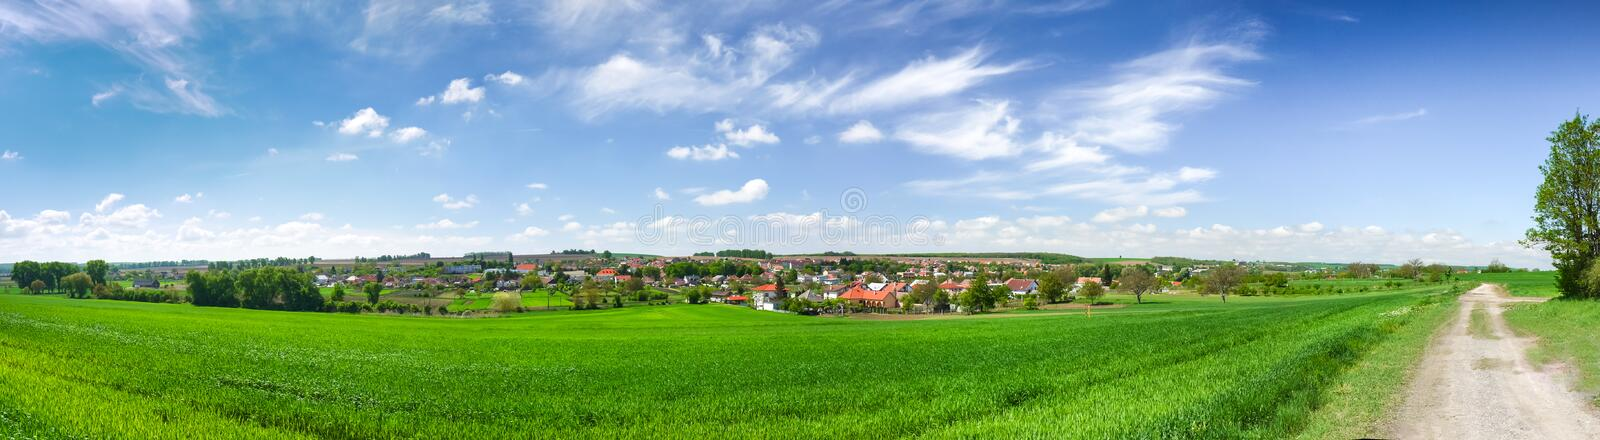 Download Rural beauty stock image. Image of country, garden, land - 31333405